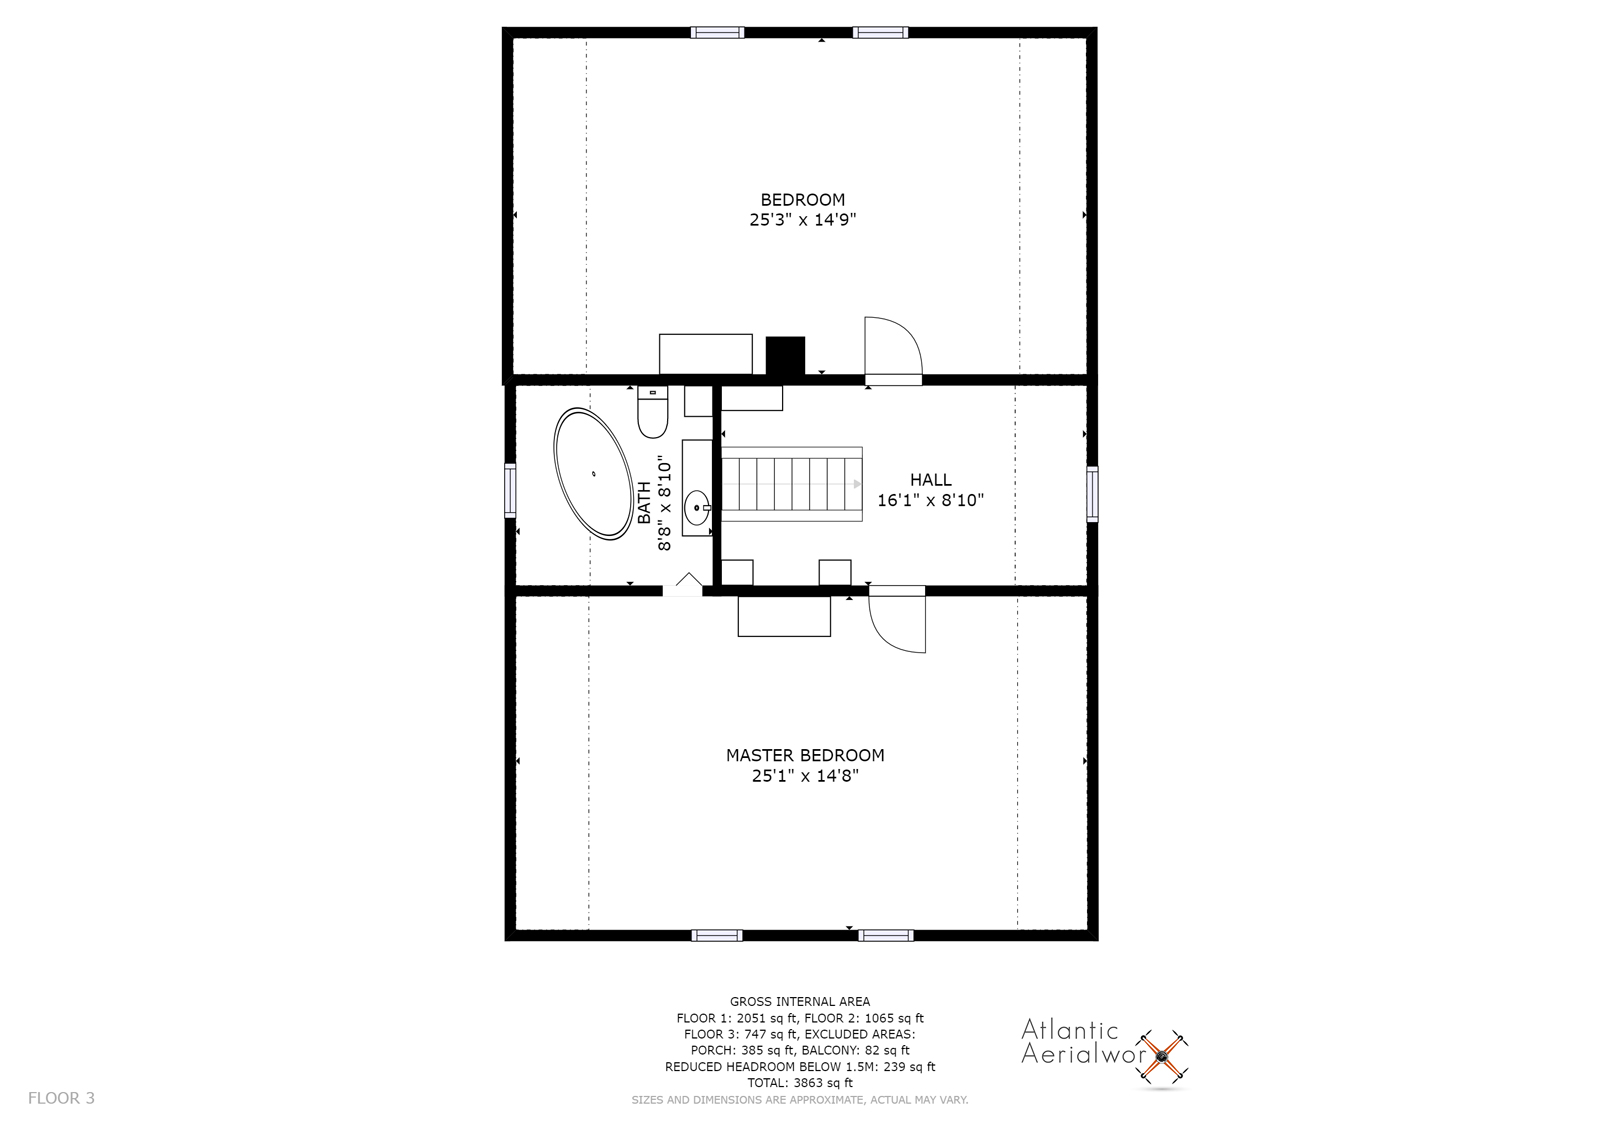 538-Main-Street-3rd-Floor-Plan.jpg